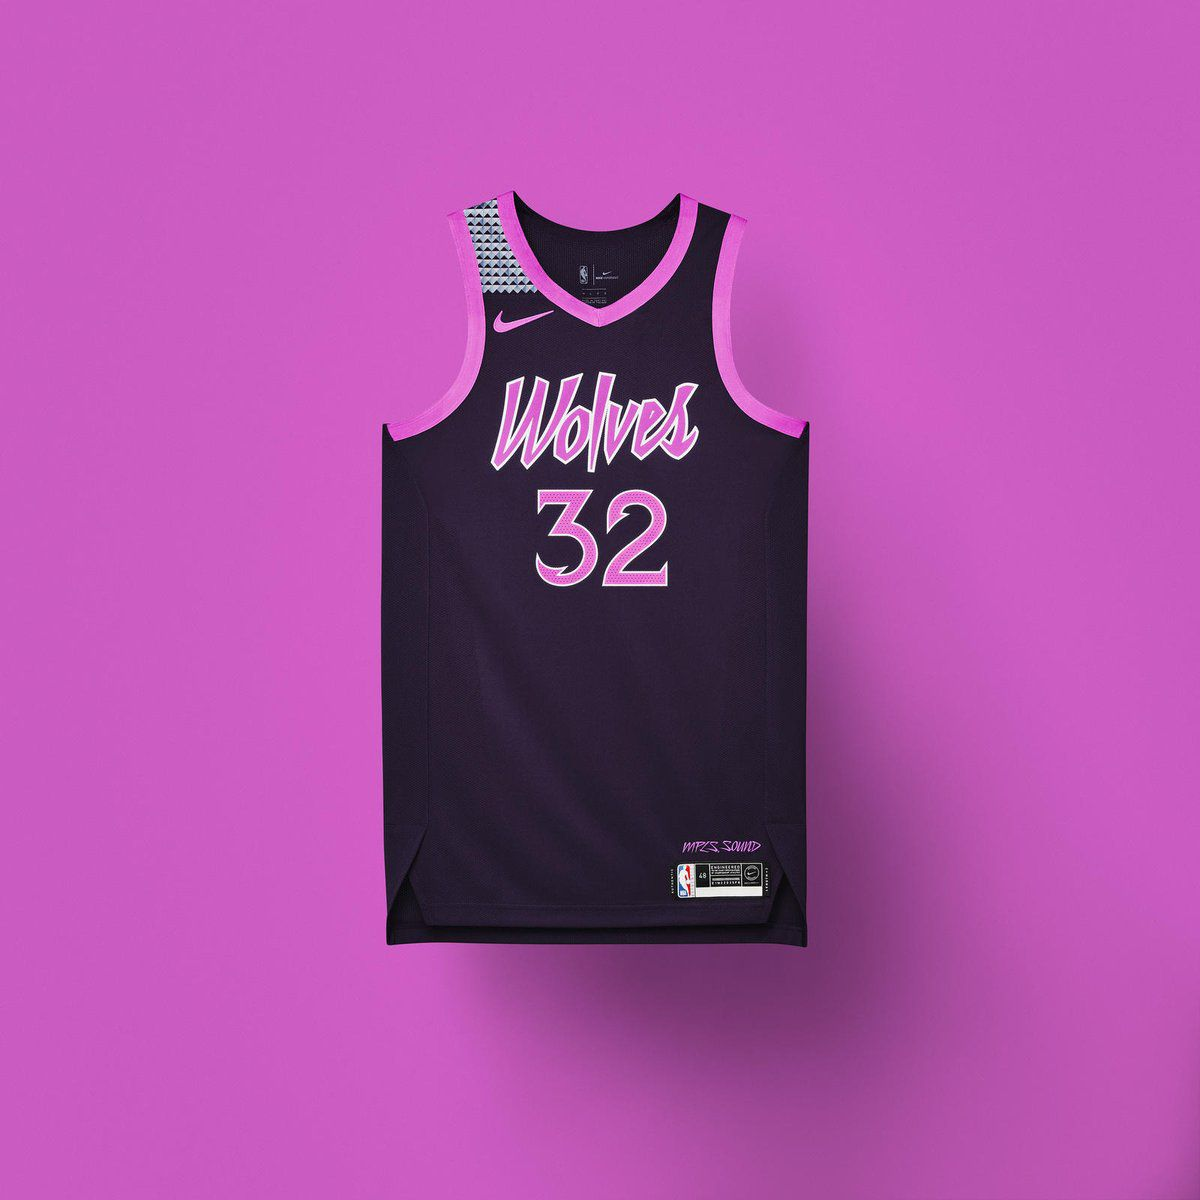 9d12bc286a9 Every NBA City Edition jersey